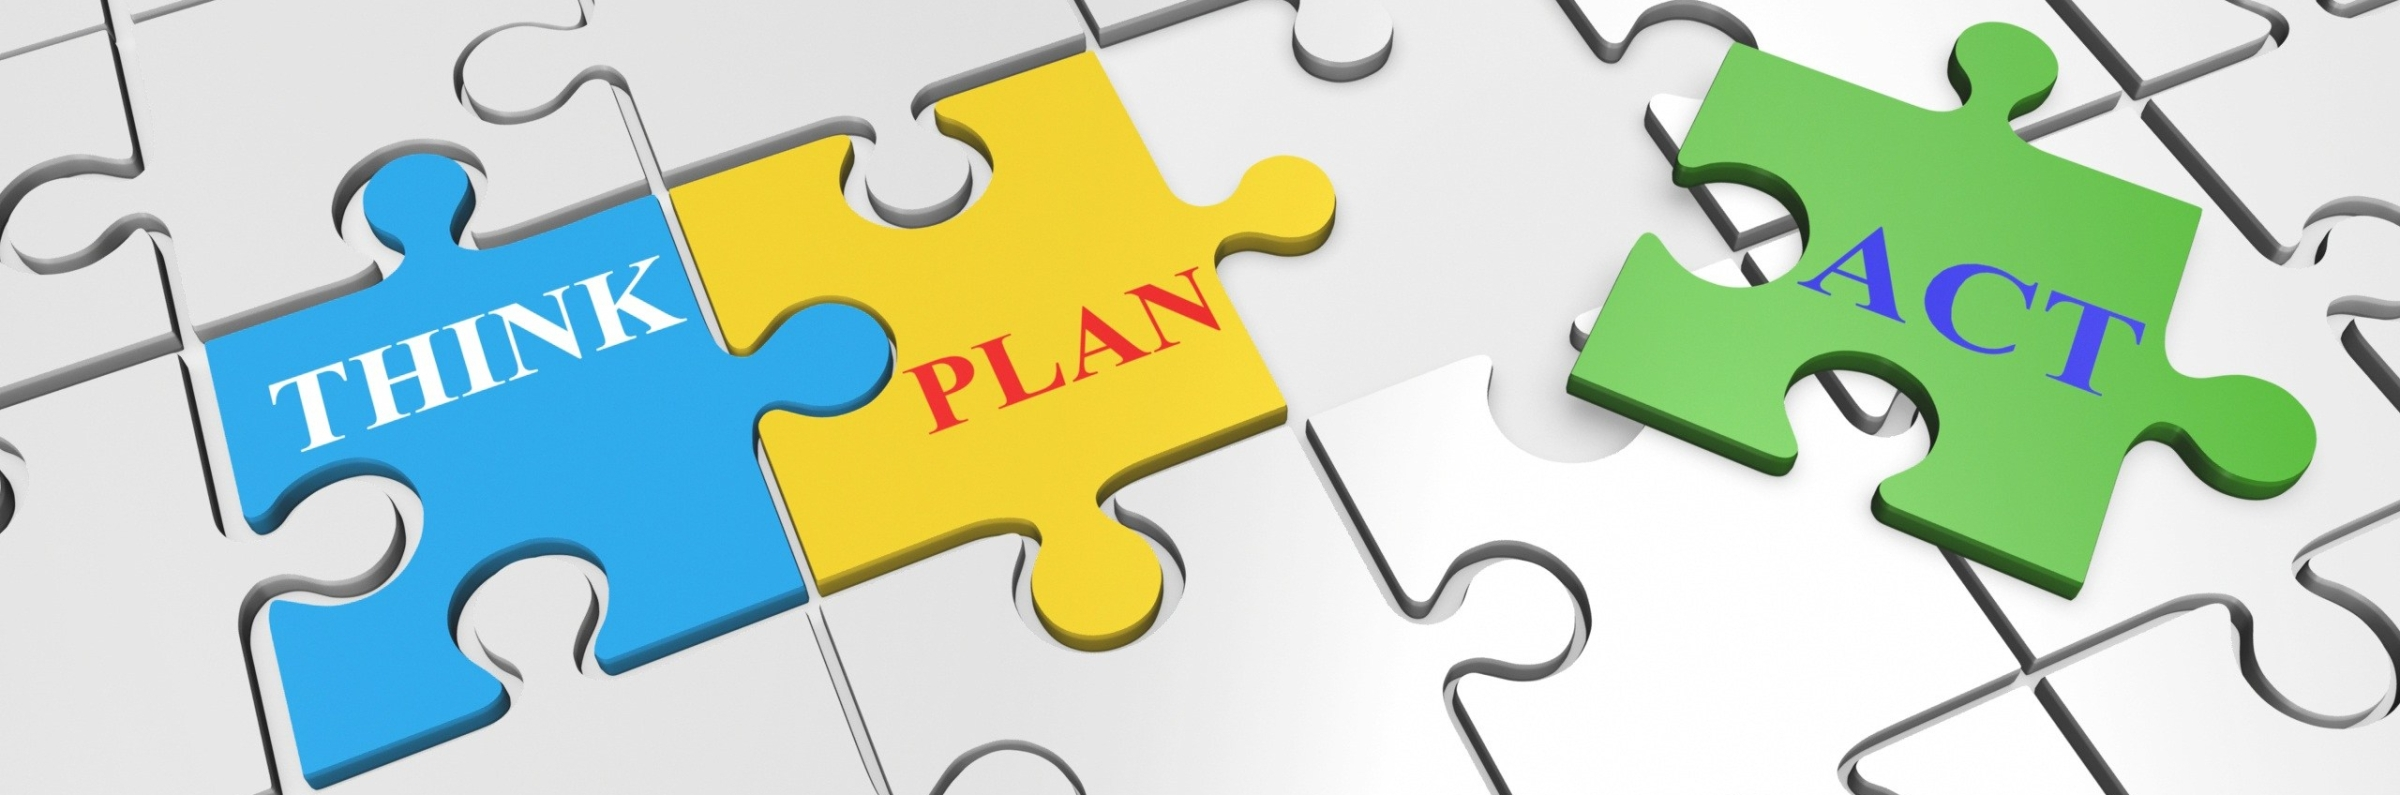 Think, Plan, Act (puzzle pieces)